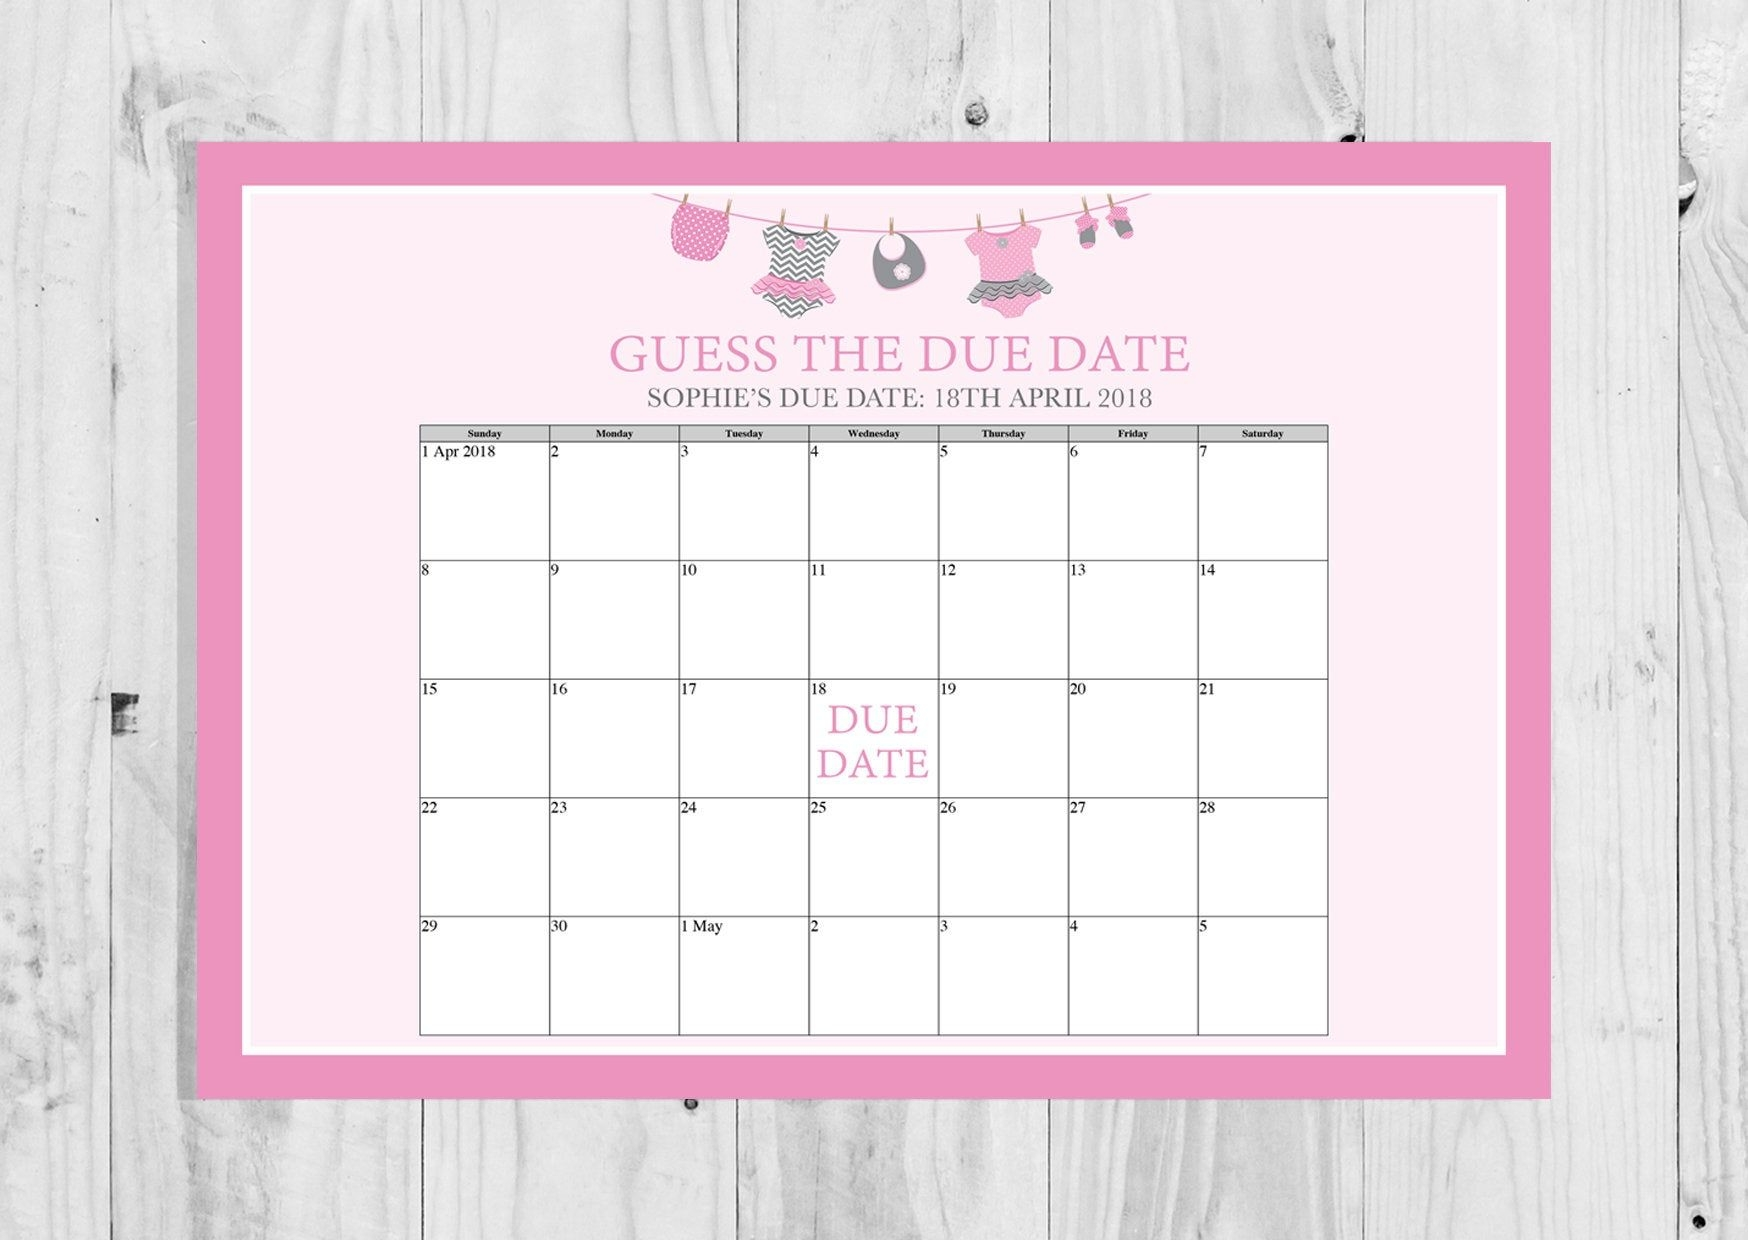 Guess The Due Date, Pink Washing Line, Clothes Line, Baby Girl, Baby  Shower, Baby Shower Game, Digital Download